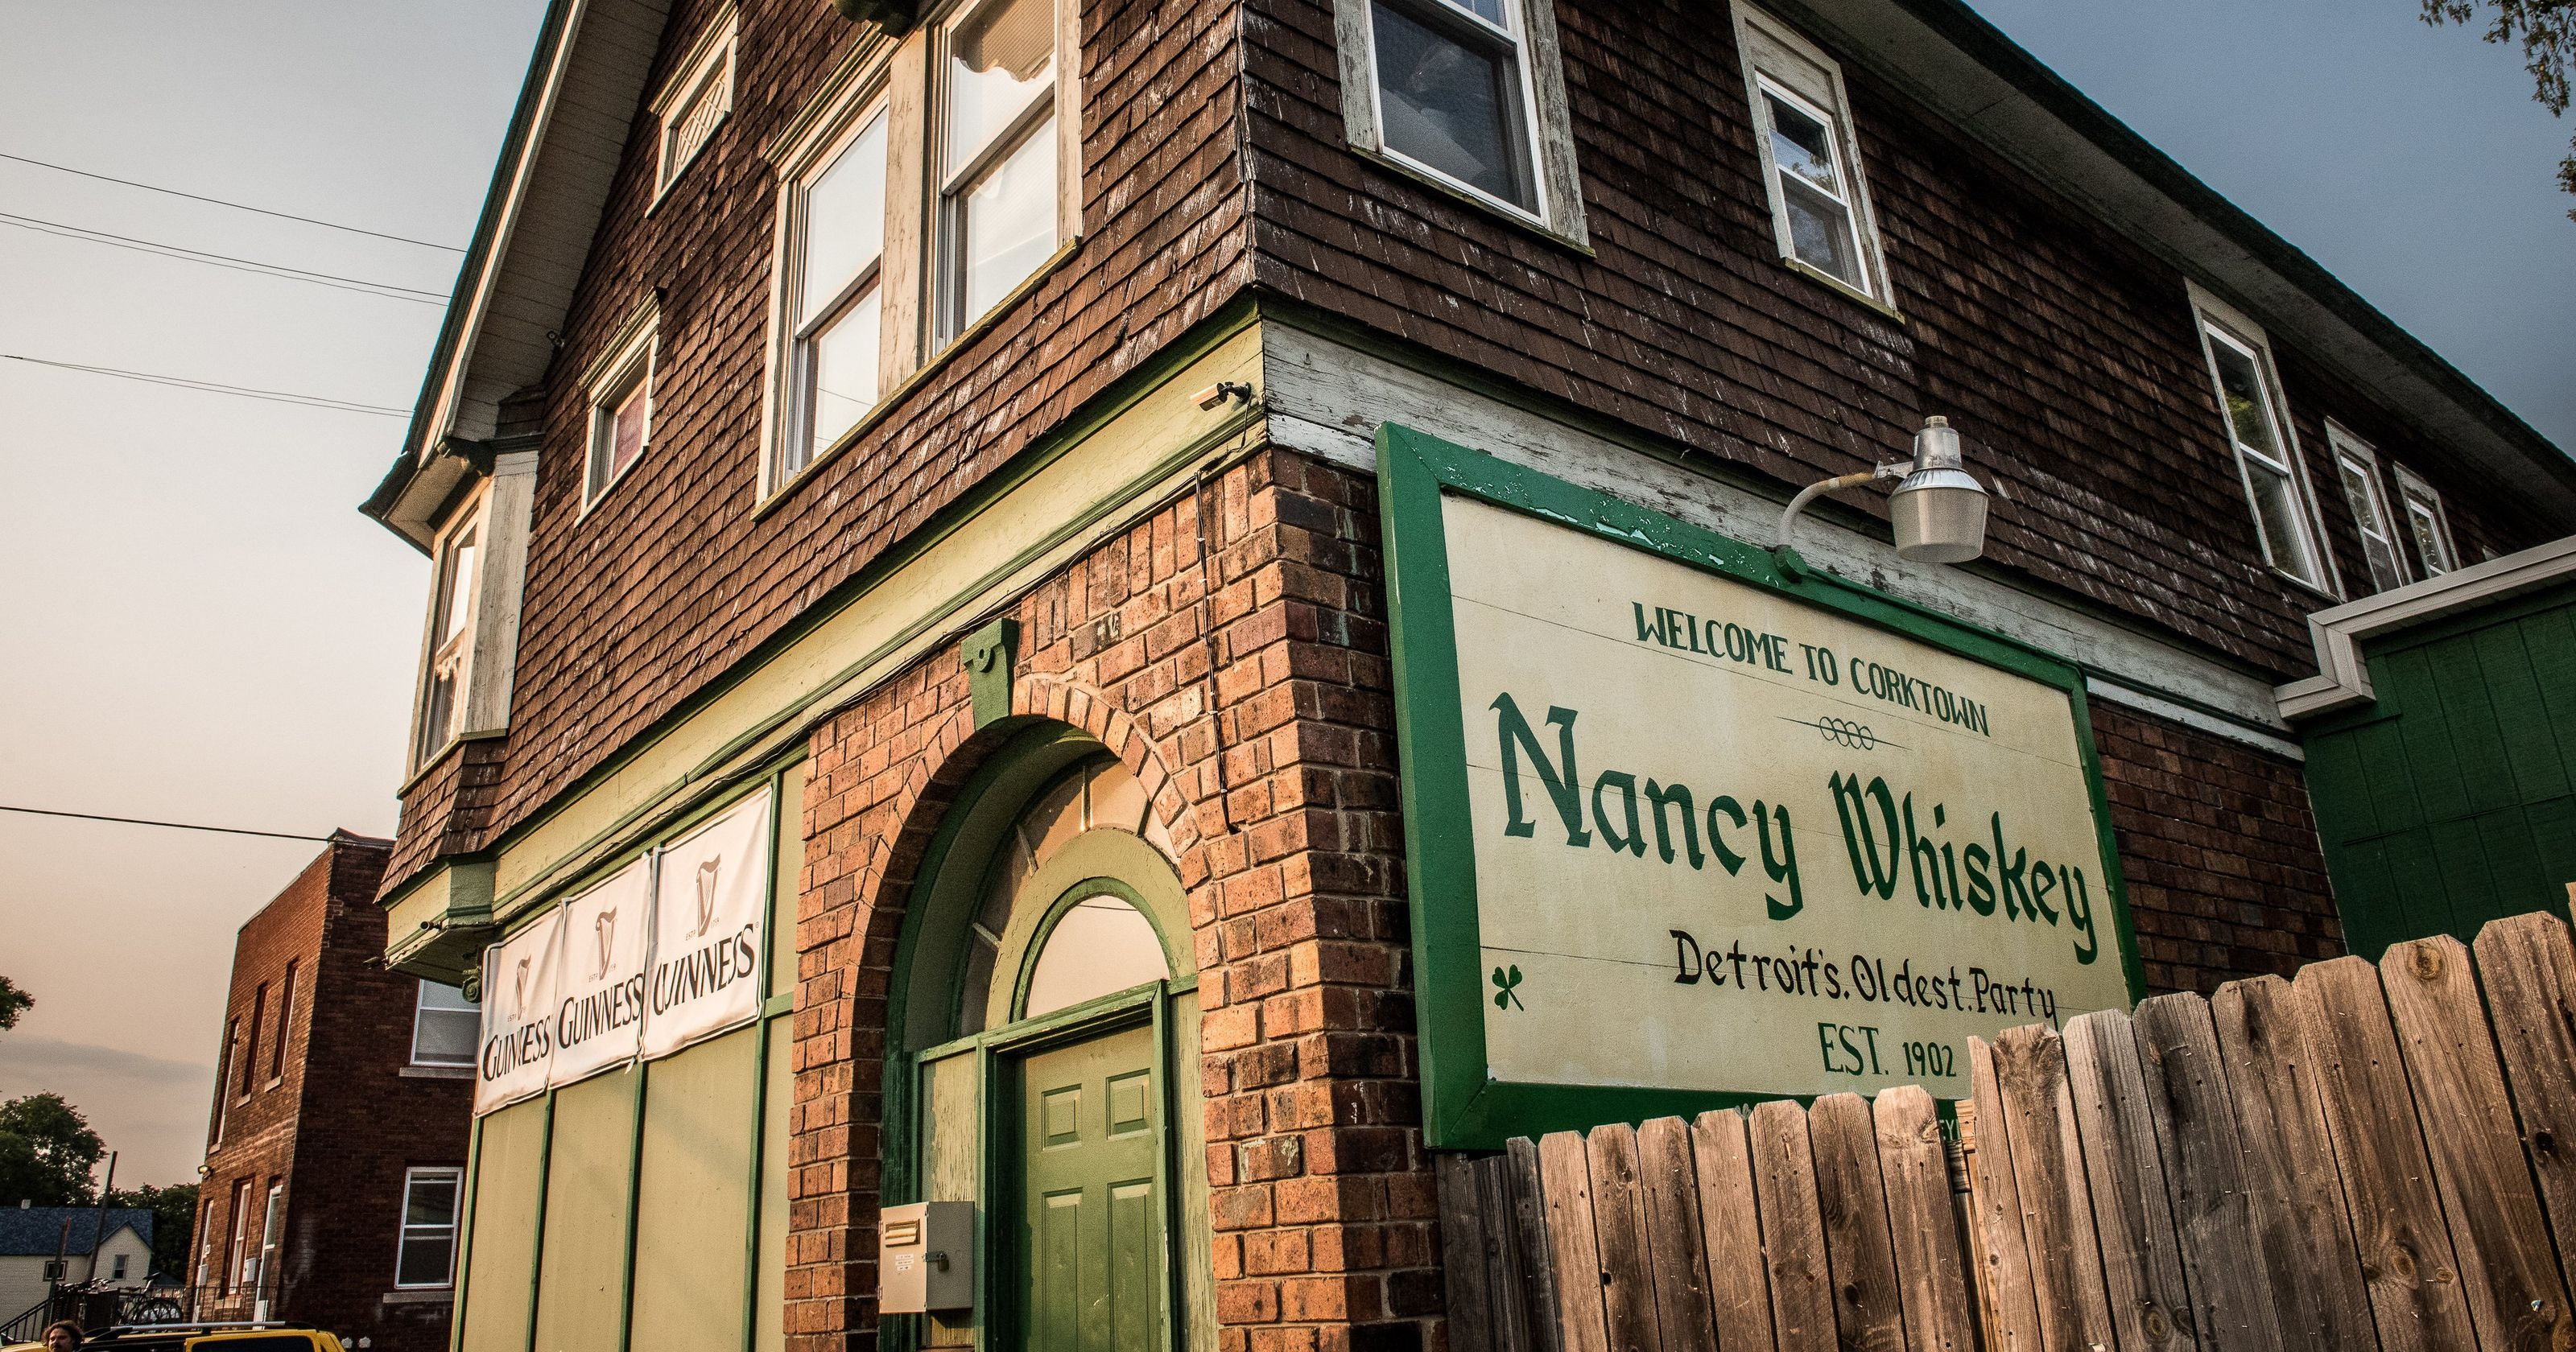 Nancy Whiskey in Detroit, Michigan